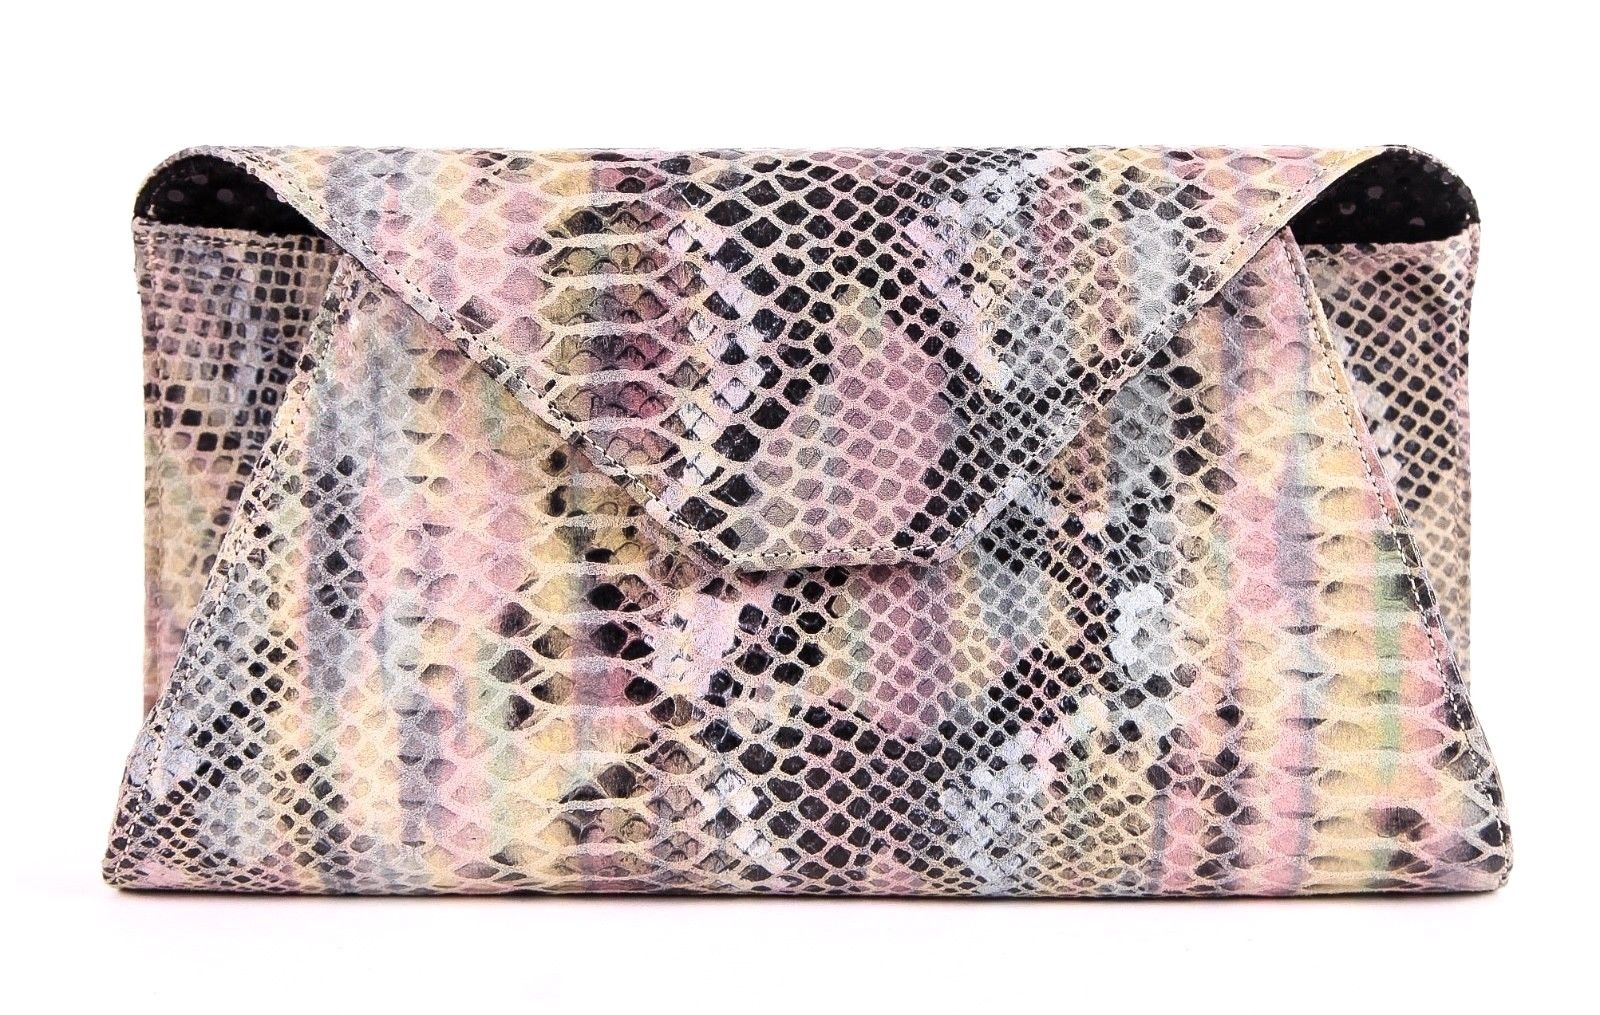 ZARA TEREZ Clutch Bag in Snakeskin Print Pink Blue Black